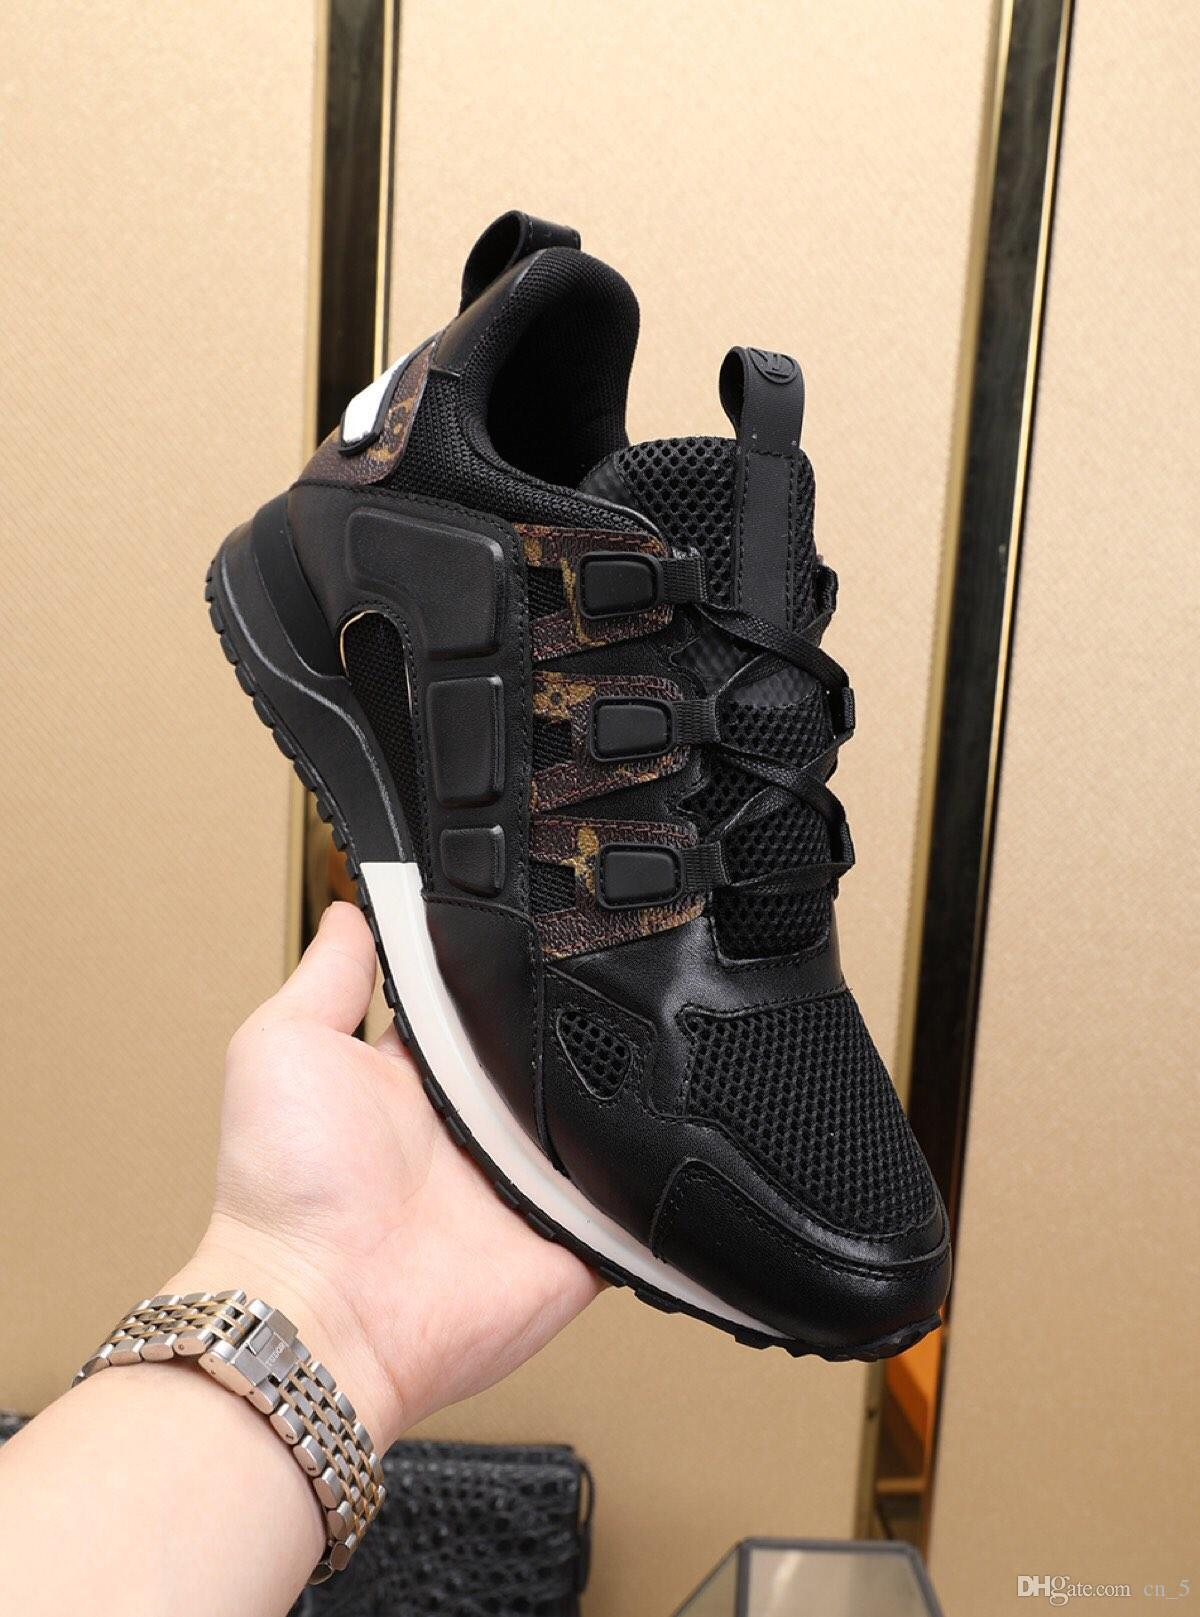 2019q tide brand fashion luxury men's designer outdoor running shoes, limited color fashion wild casual shoes, size 38-45